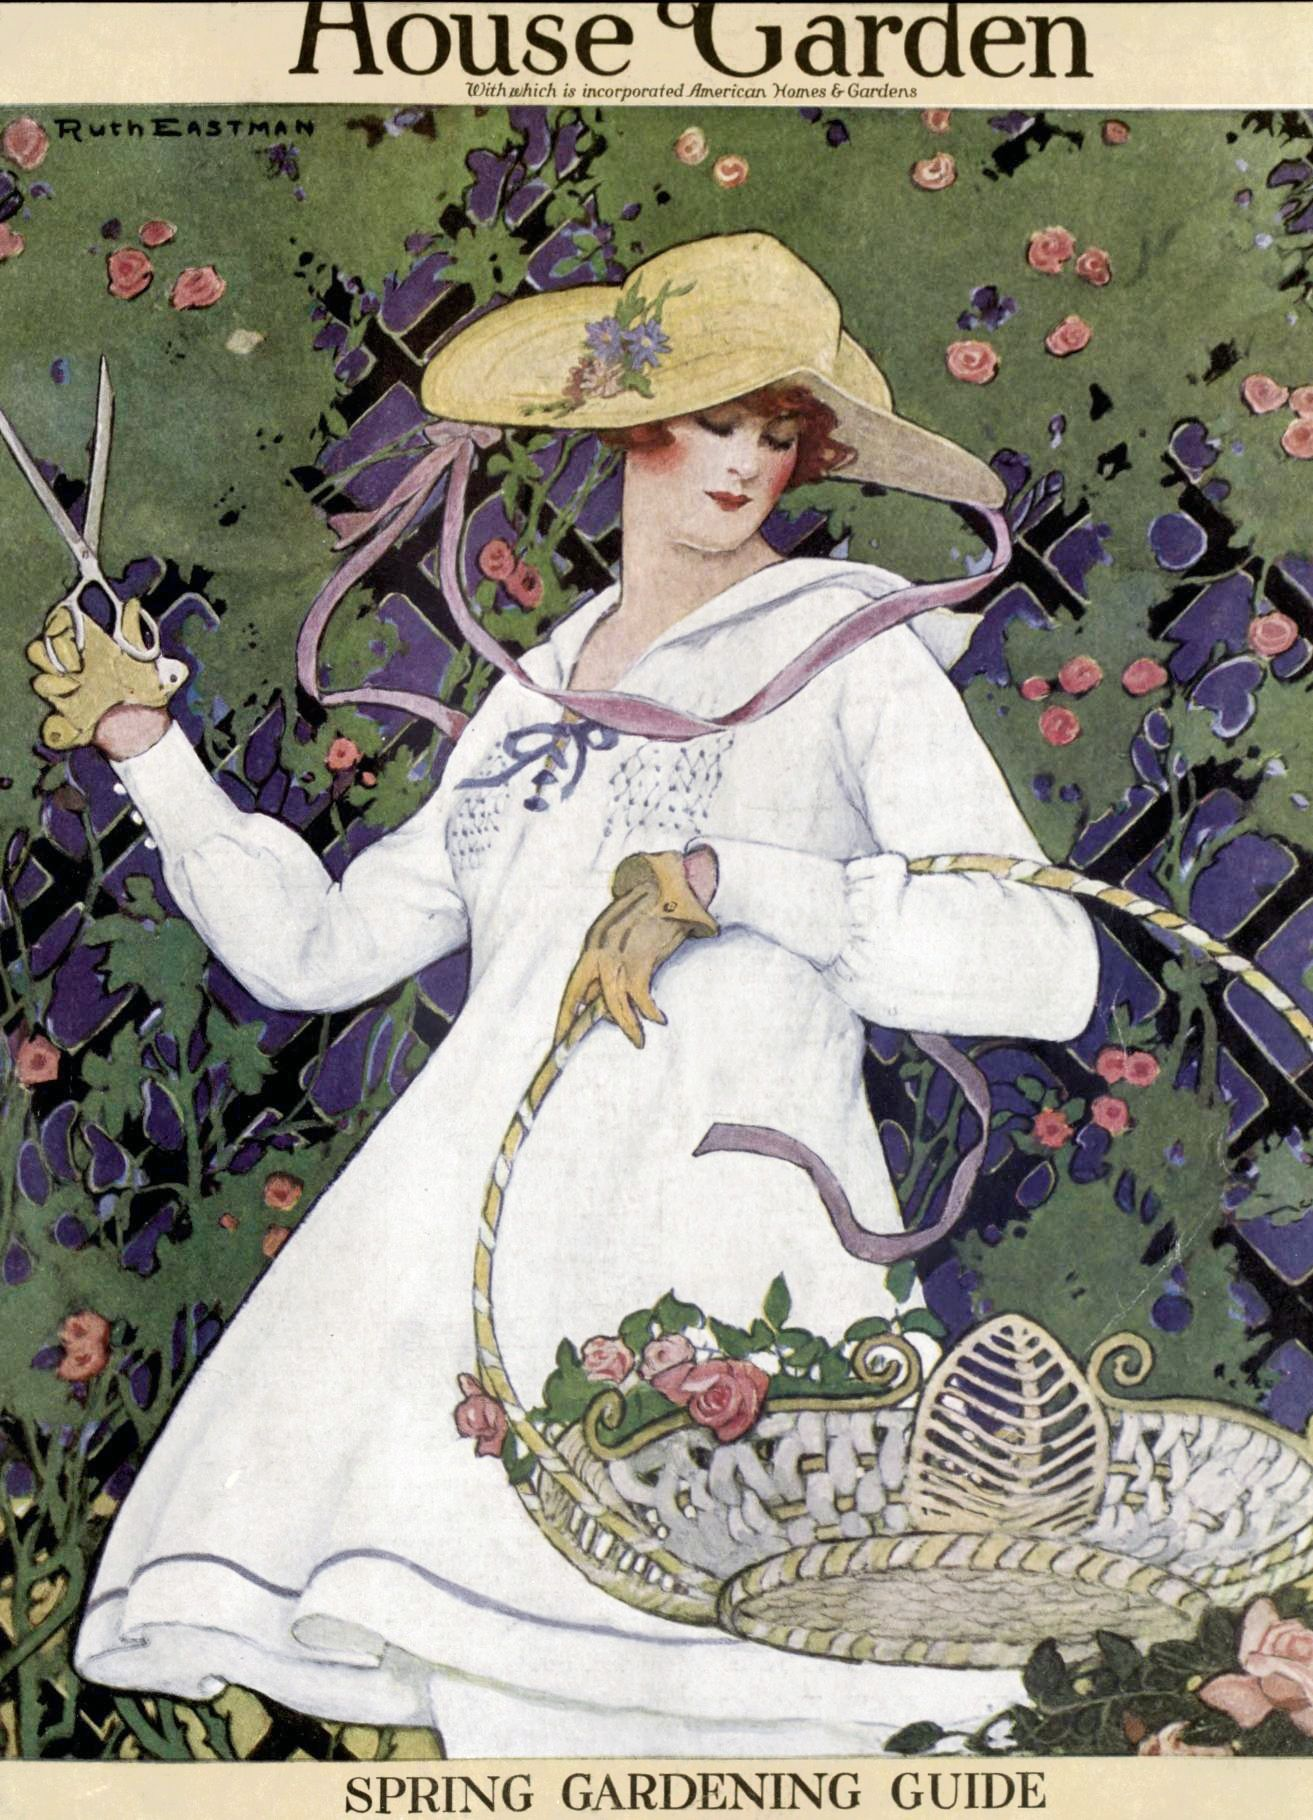 March 1916 cover of House and Garden magazine by Ruth Eastman